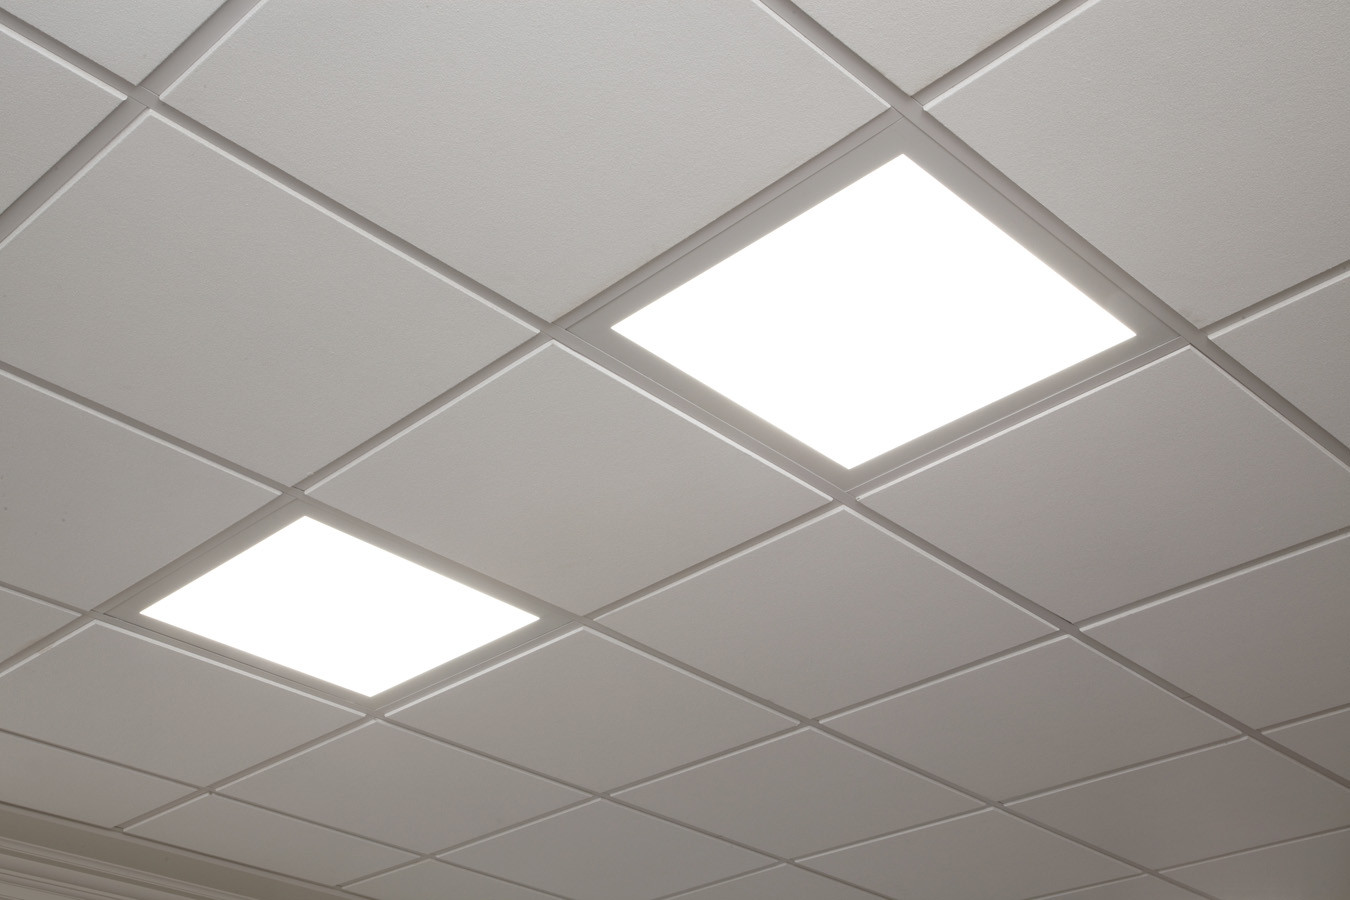 2 Drop Ceiling Lights Your Best Choice For Renovating